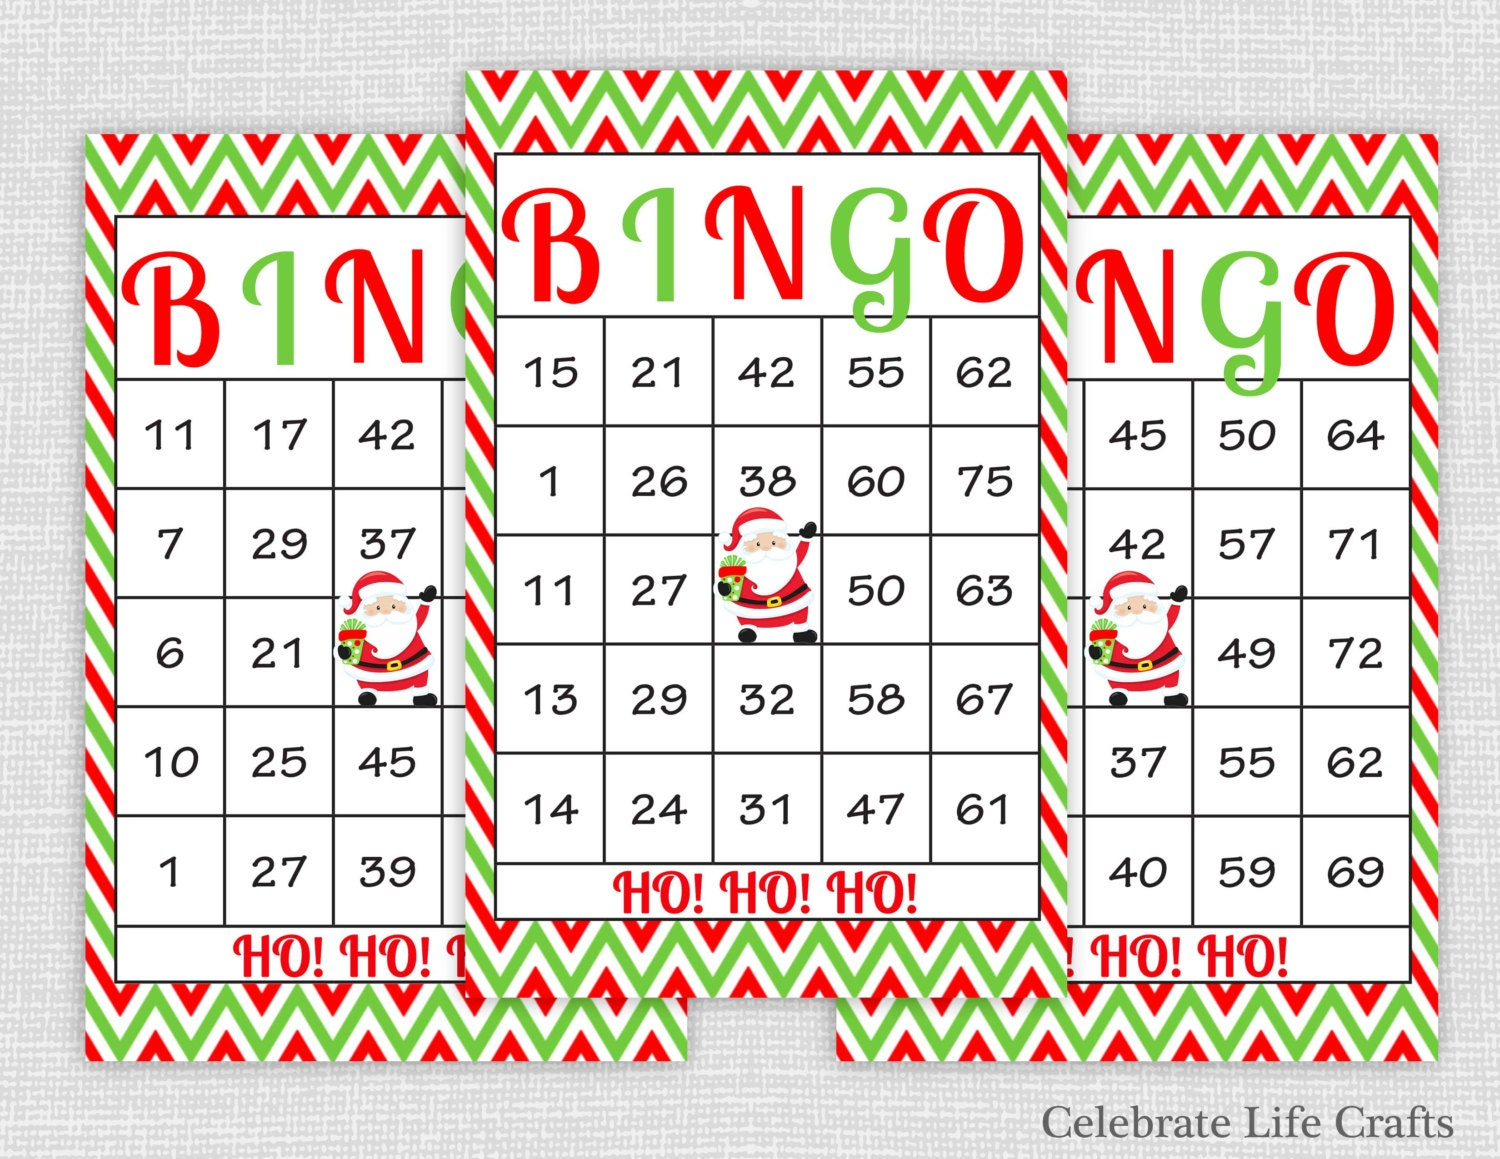 Free Printable Bingo Cards With Numbers 1 90 Pdf